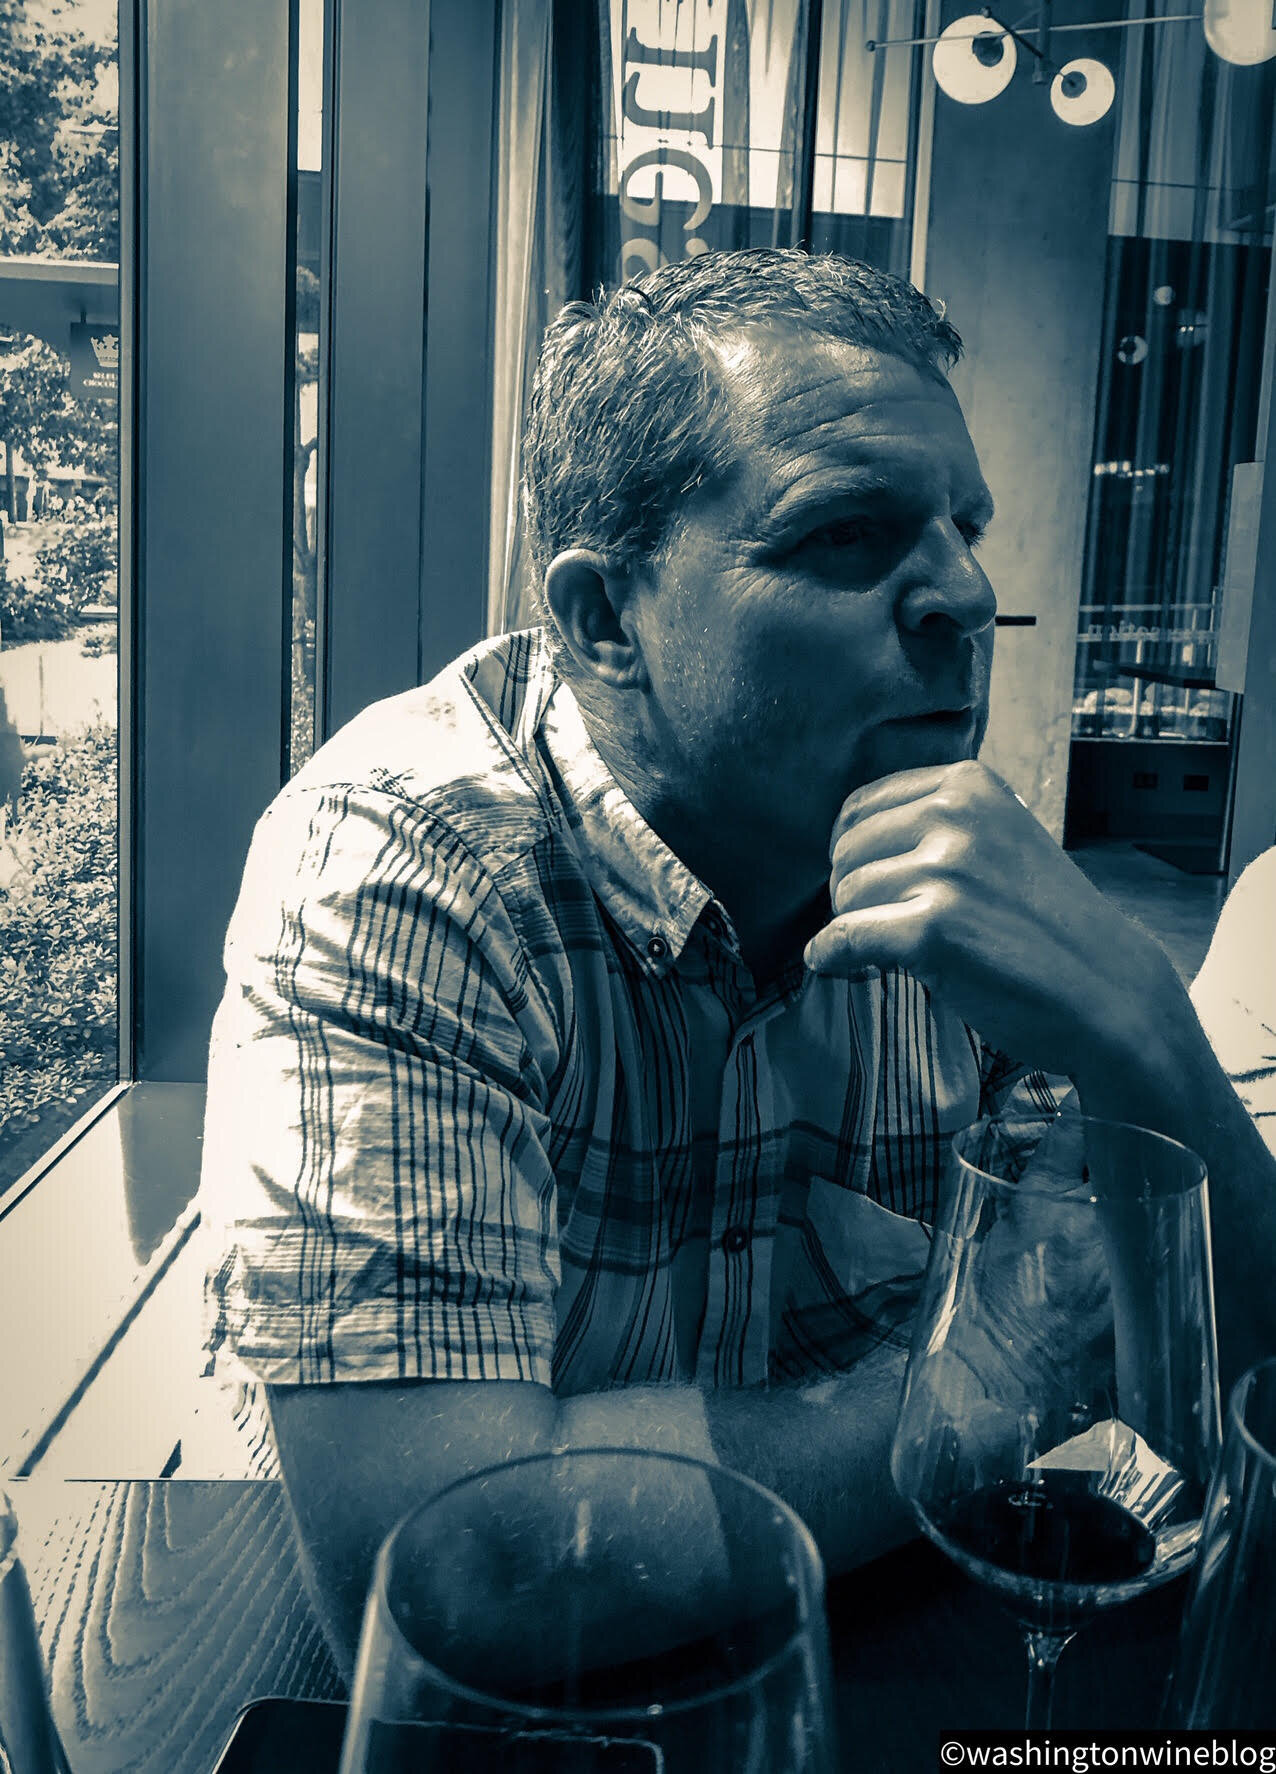 Superstar winemaker, Chris Figgins, has crafted some scintillating new single vineyard Cabernet Sauvignon wines.